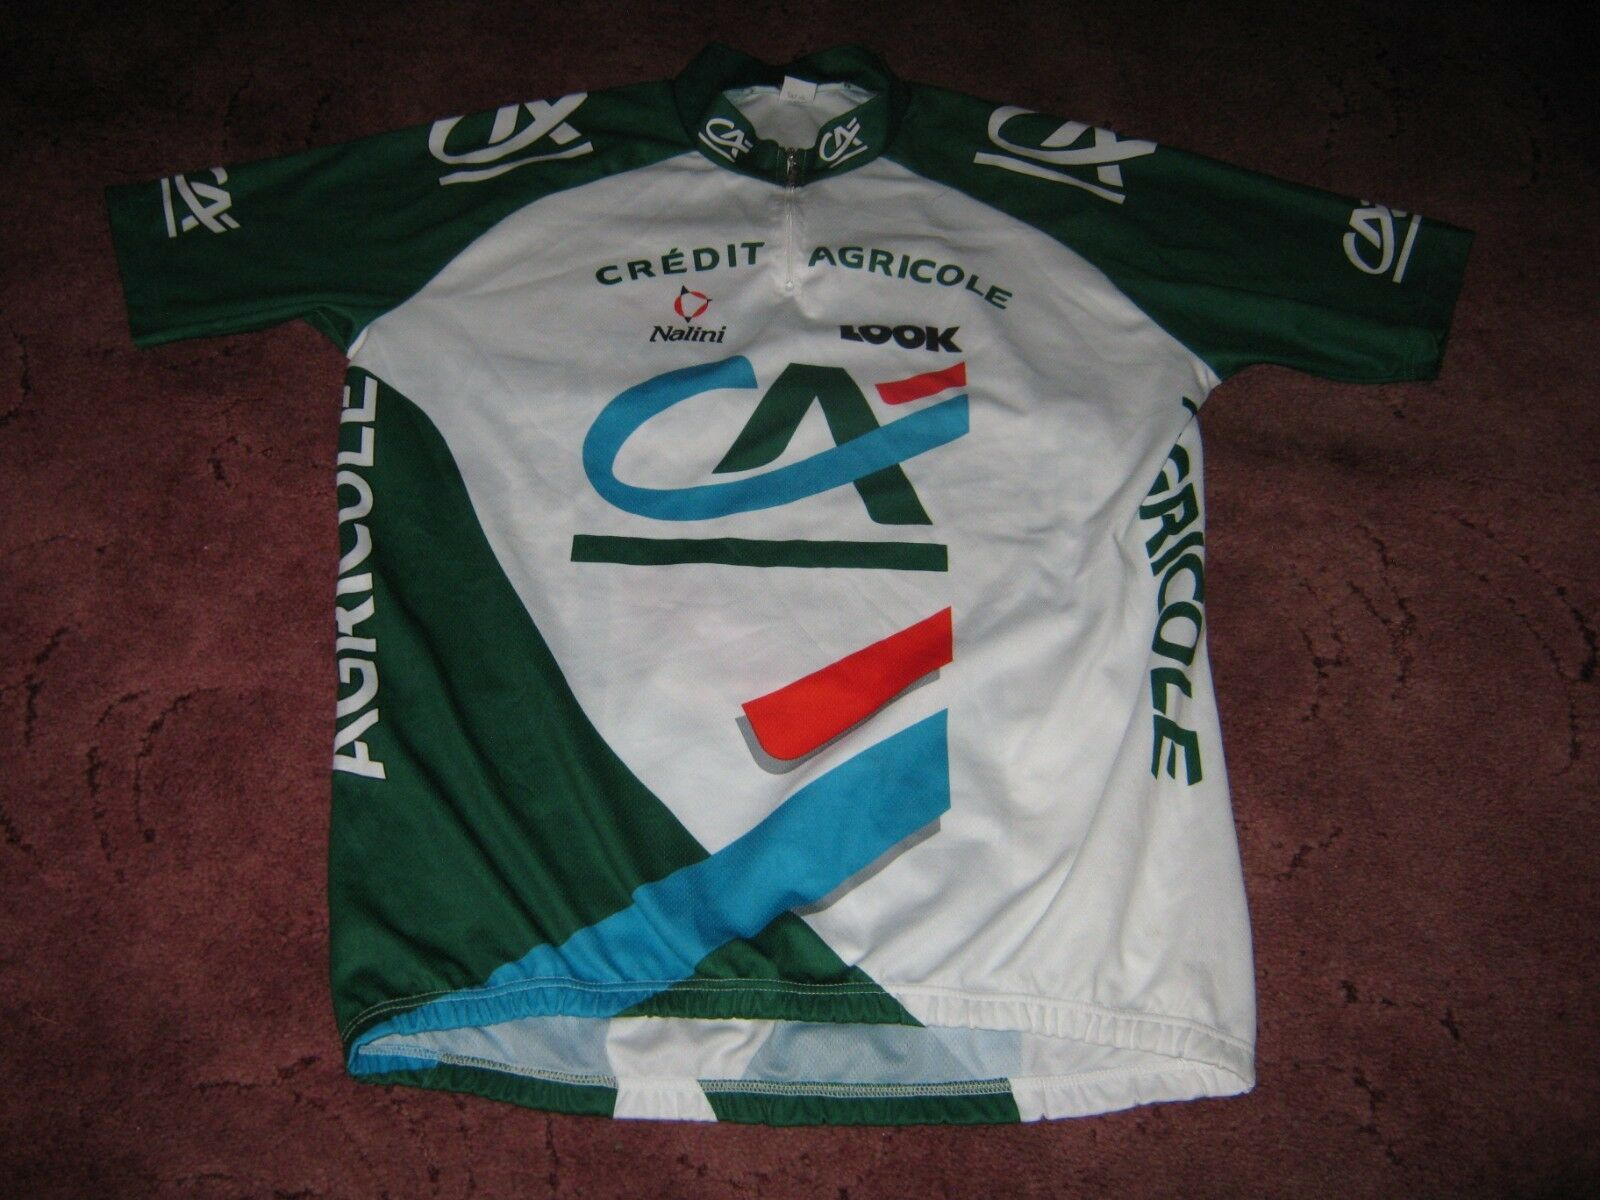 CREDIT AGRICOLE LOOK NALINI ITALIAN VINTAGE CYCLING JERSEY [7-46 ]